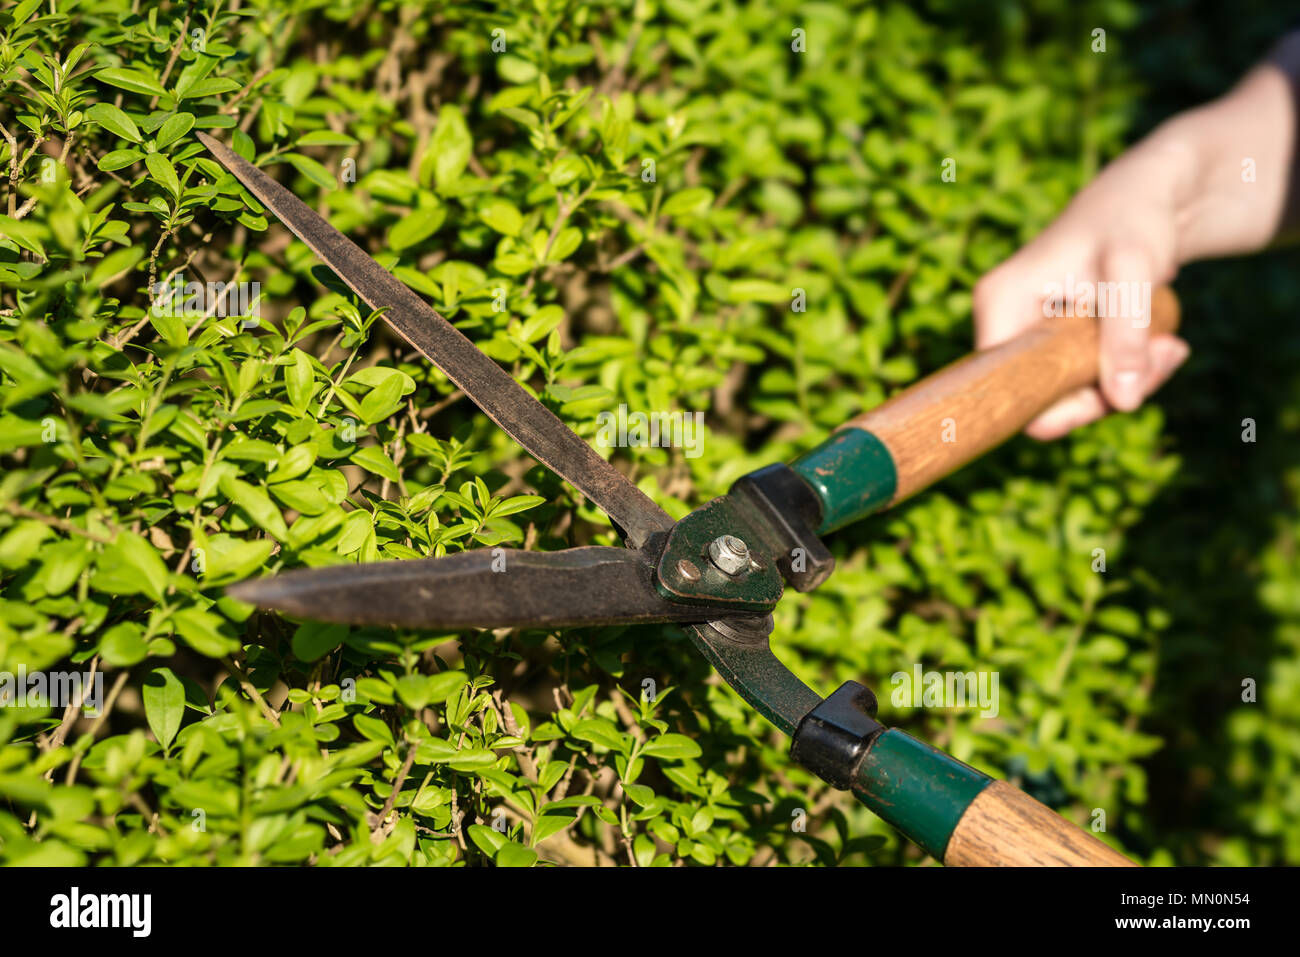 Pruner cutting a hedge - Stock Image